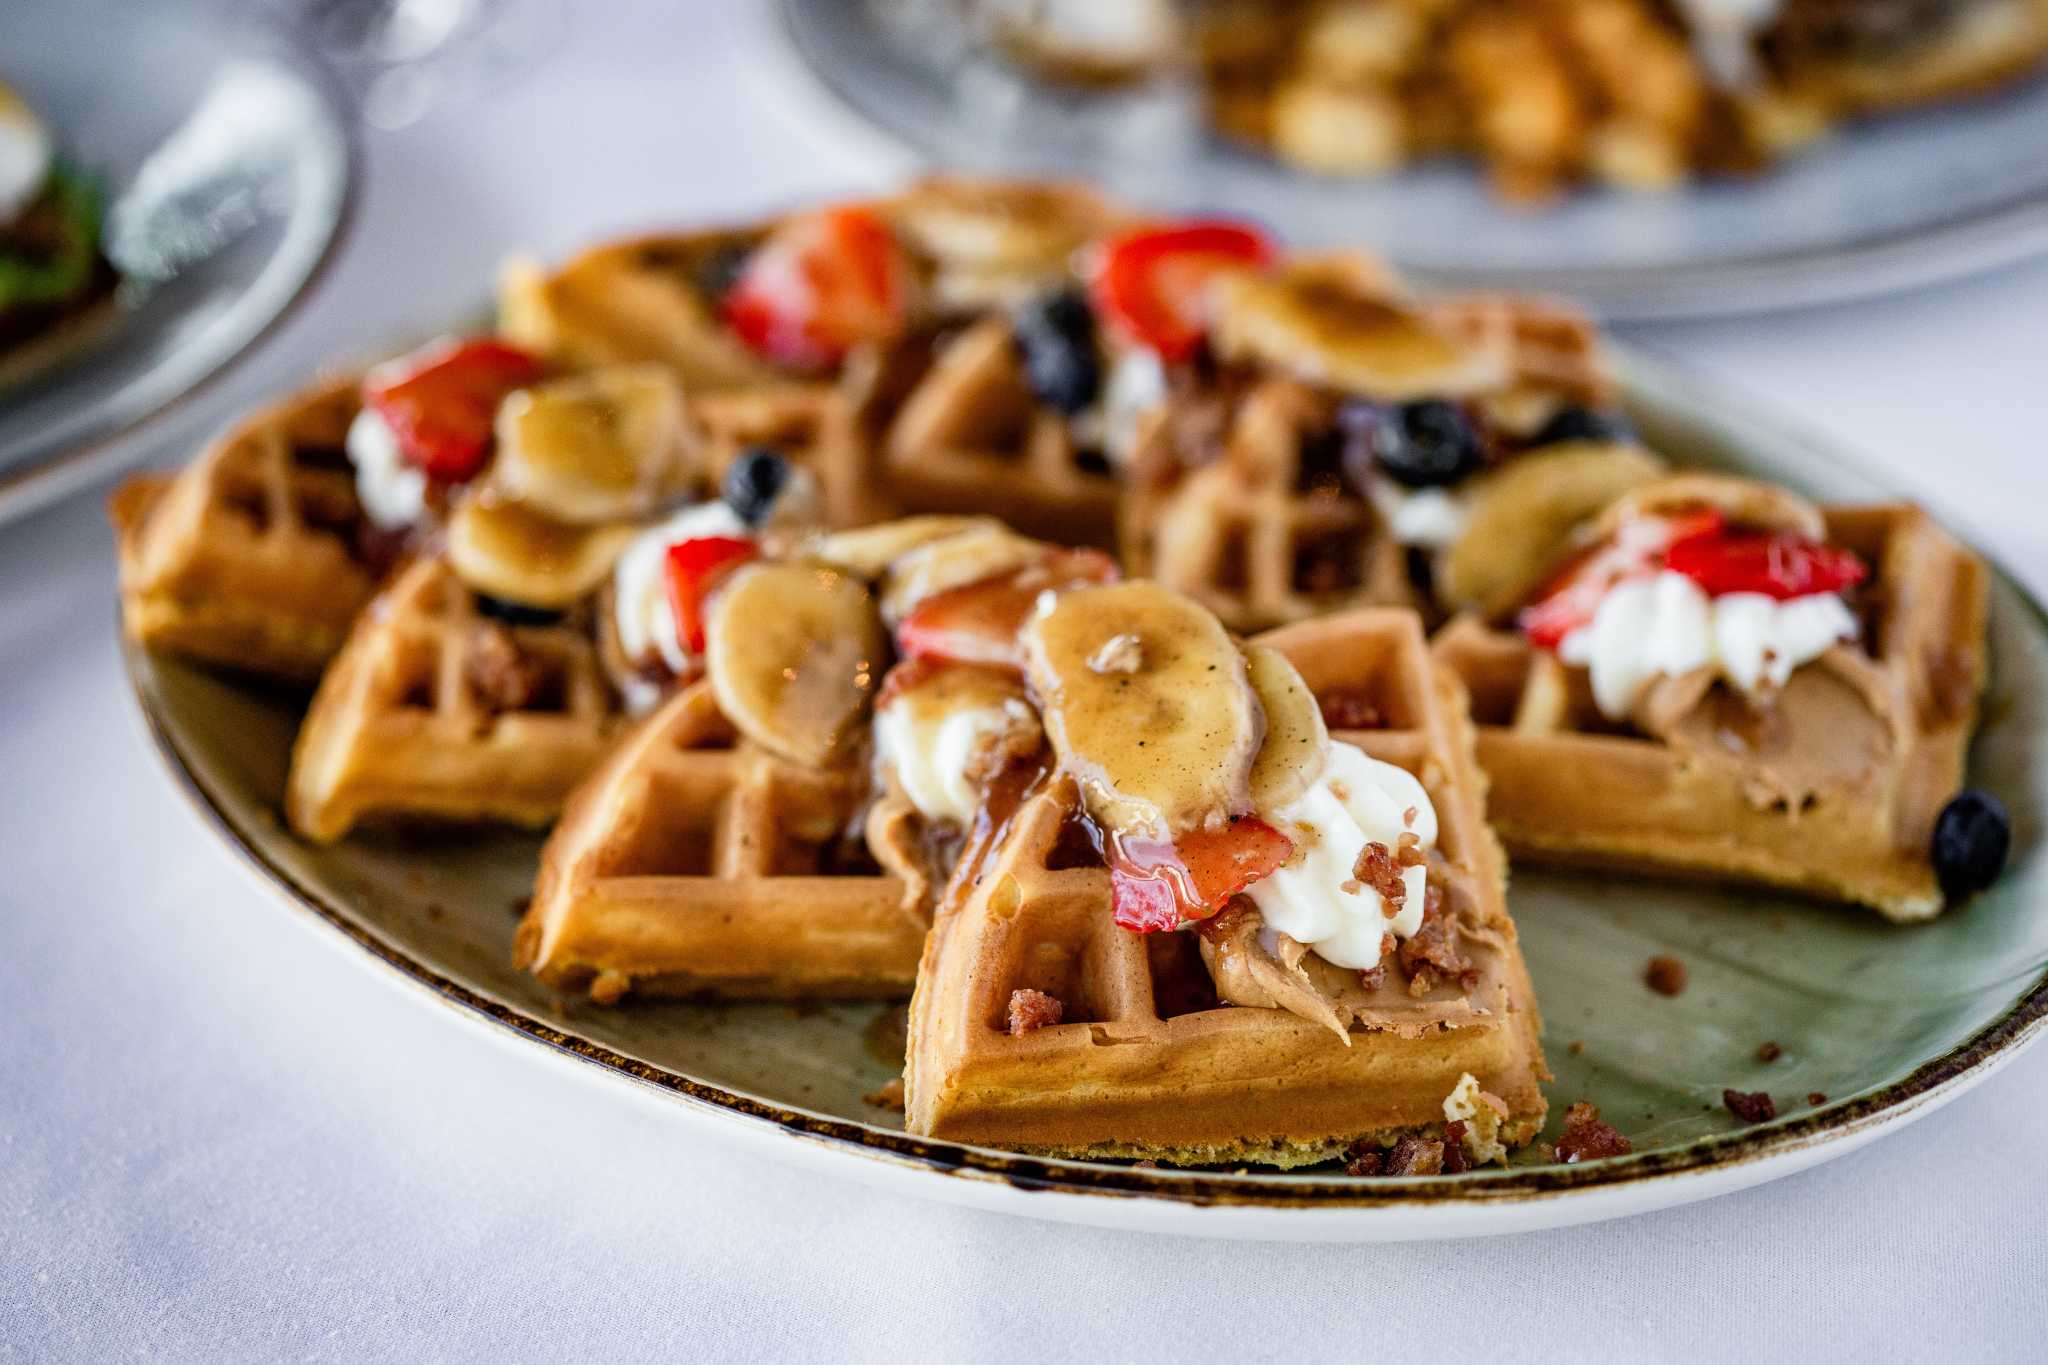 Here's where to get top-rated sweet and savory waffles in Houston